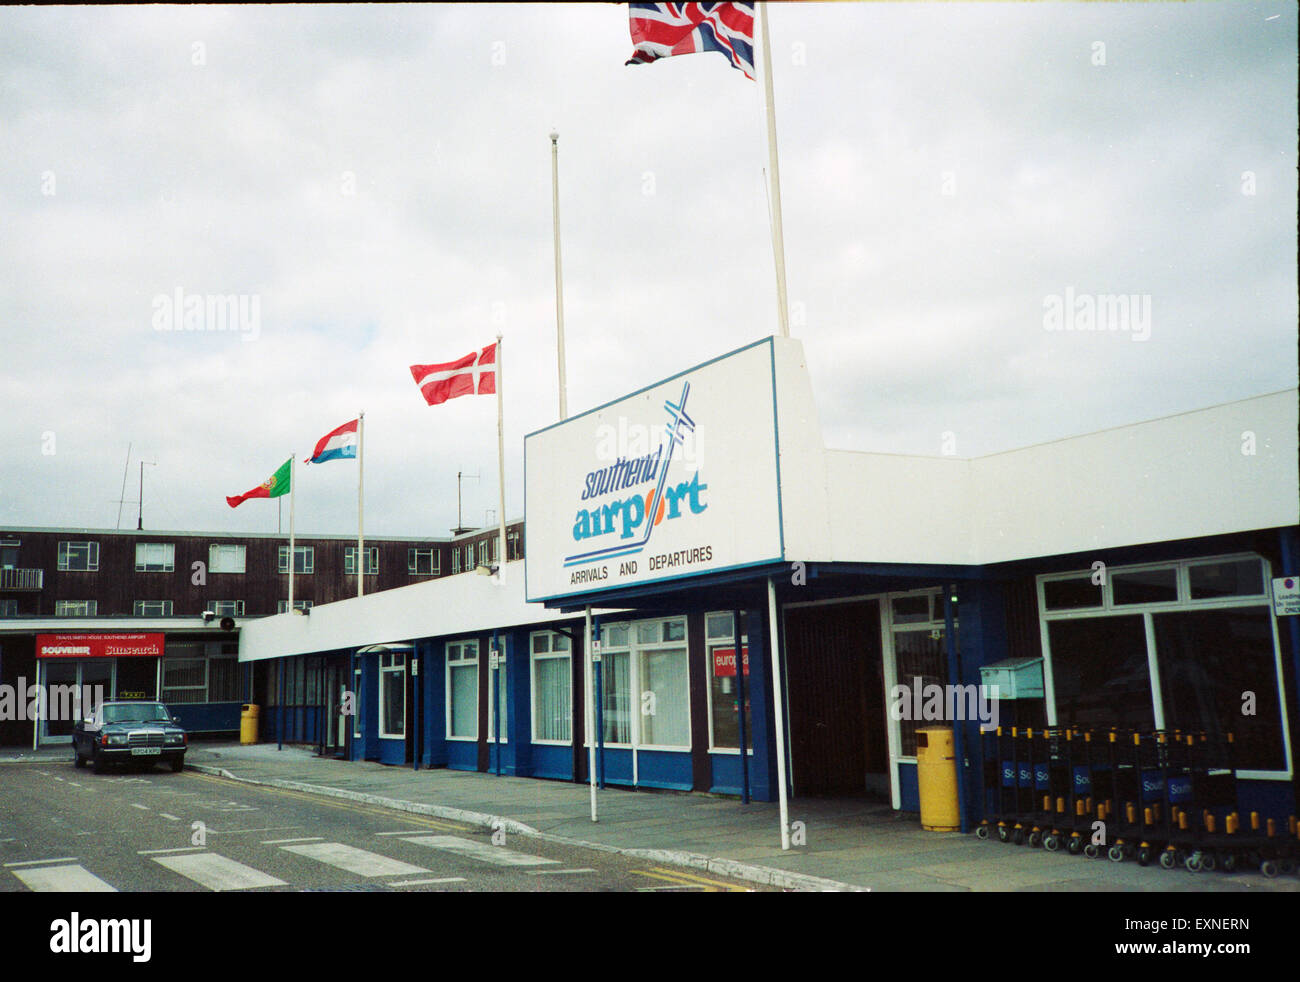 Southend Airport Terminal Entrance 1990 - Stock Image